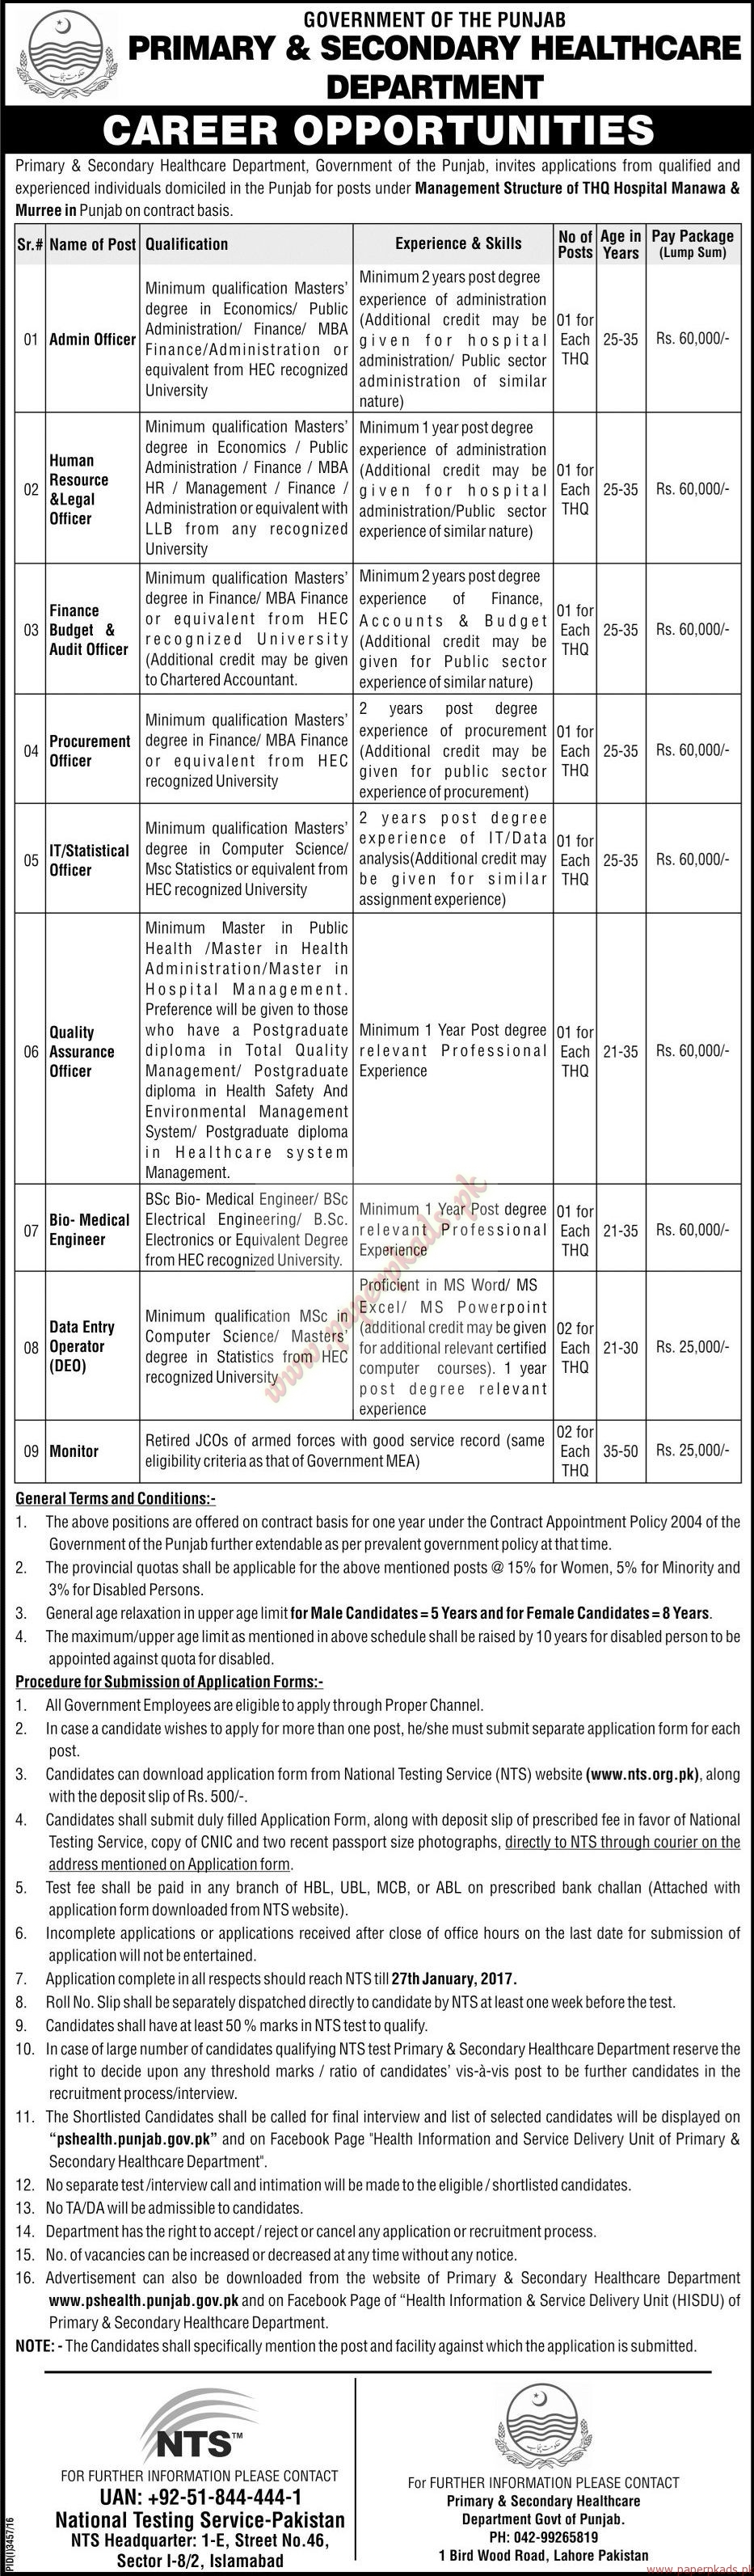 Government of the Punjab - Primary & Secondary HealthCare Department Jobs 4